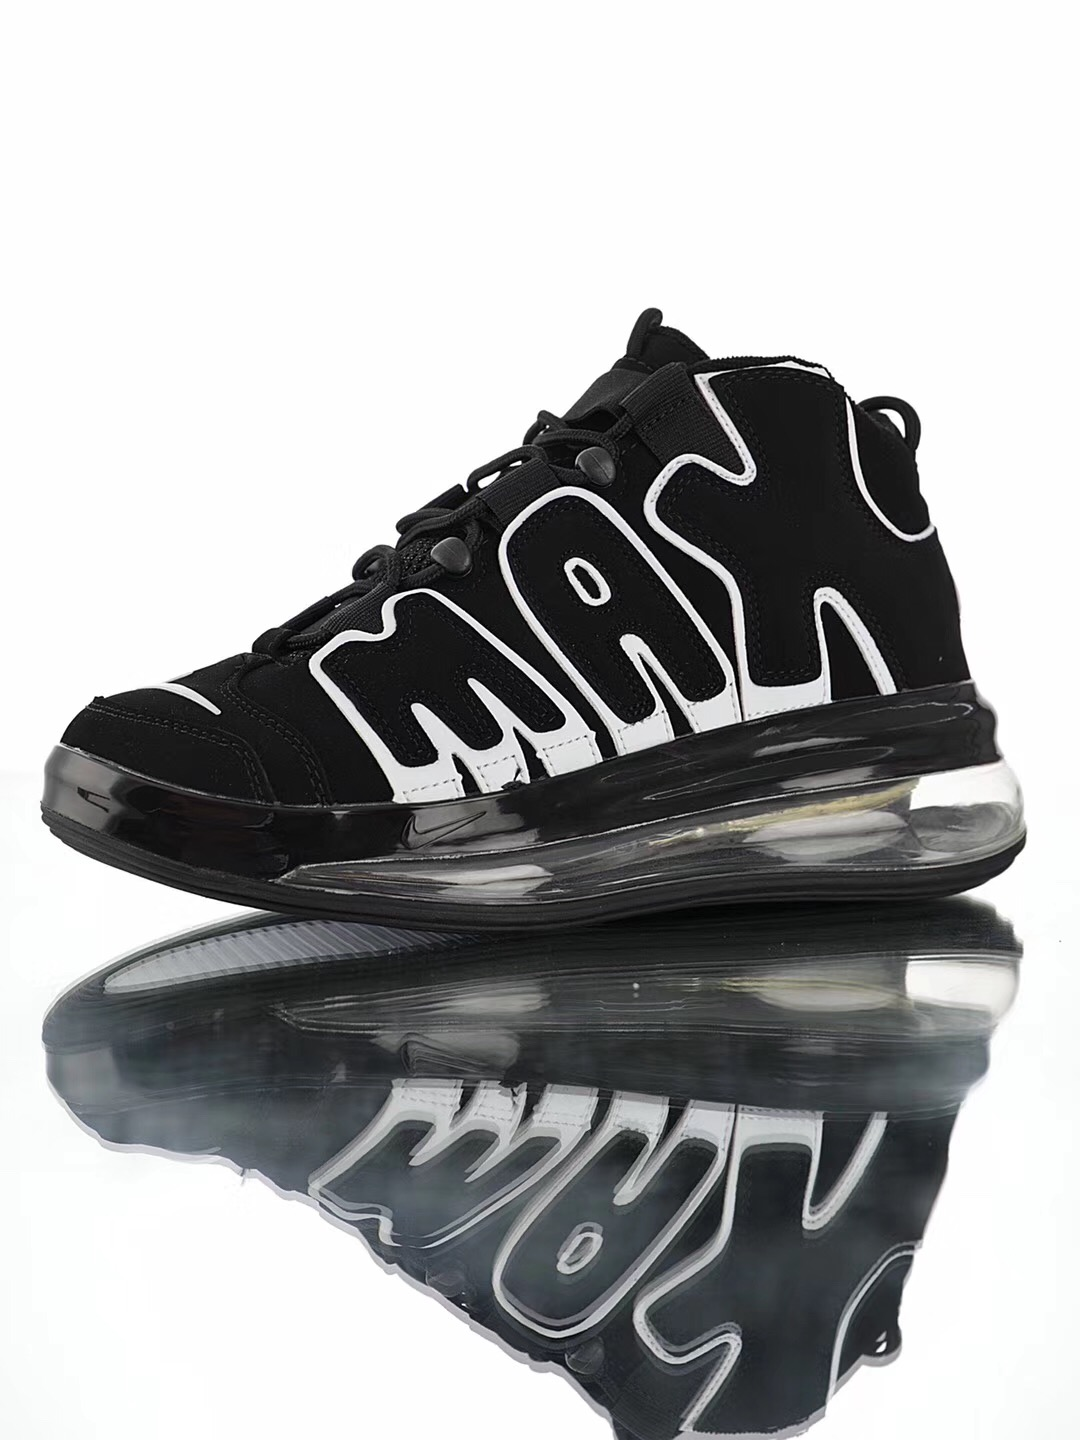 Cheap Real Nike Air More Uptempo 720 QS9 Black White